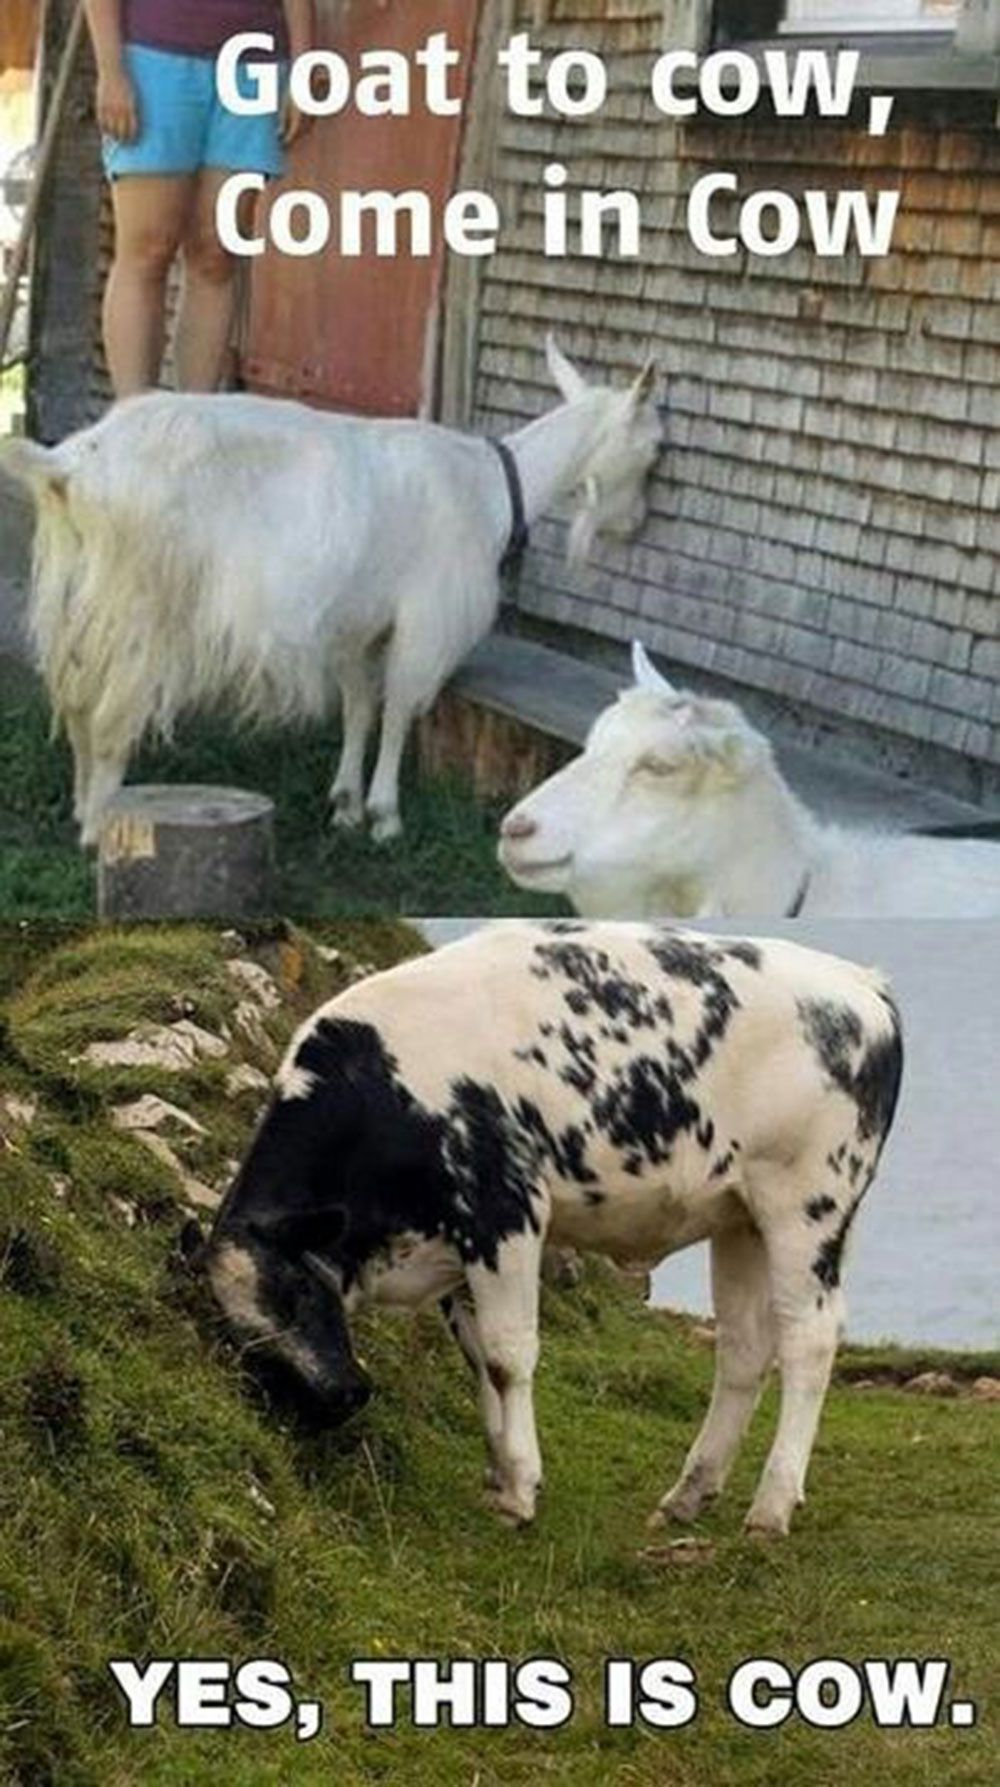 Funny Farm Animals Meme : We love cow humour stanpacnet dairy goat